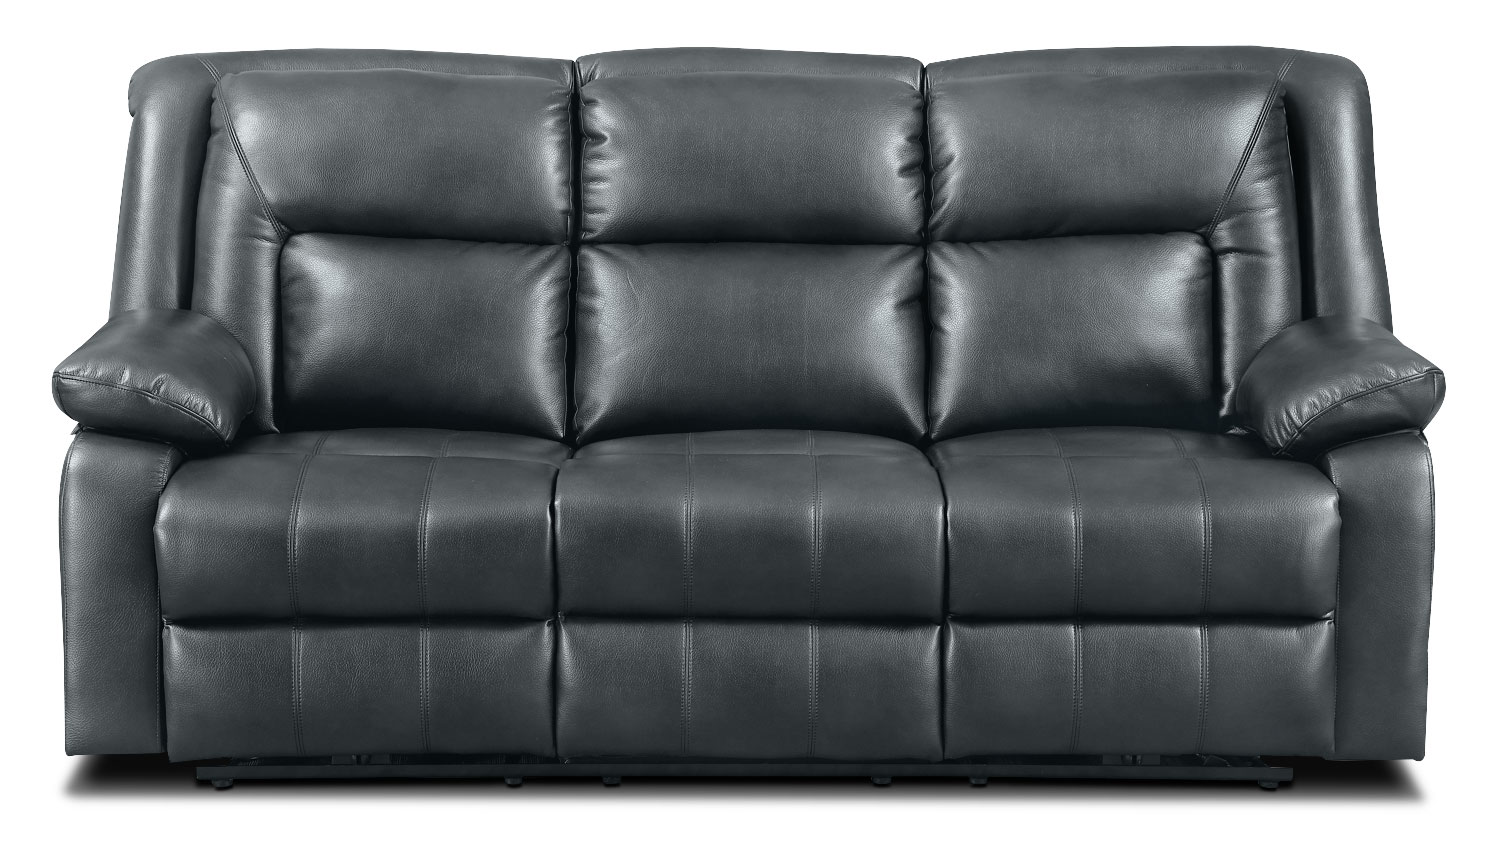 Living Room Furniture - Blane Leather-Look Fabric Power Reclining Sofa – Graphite